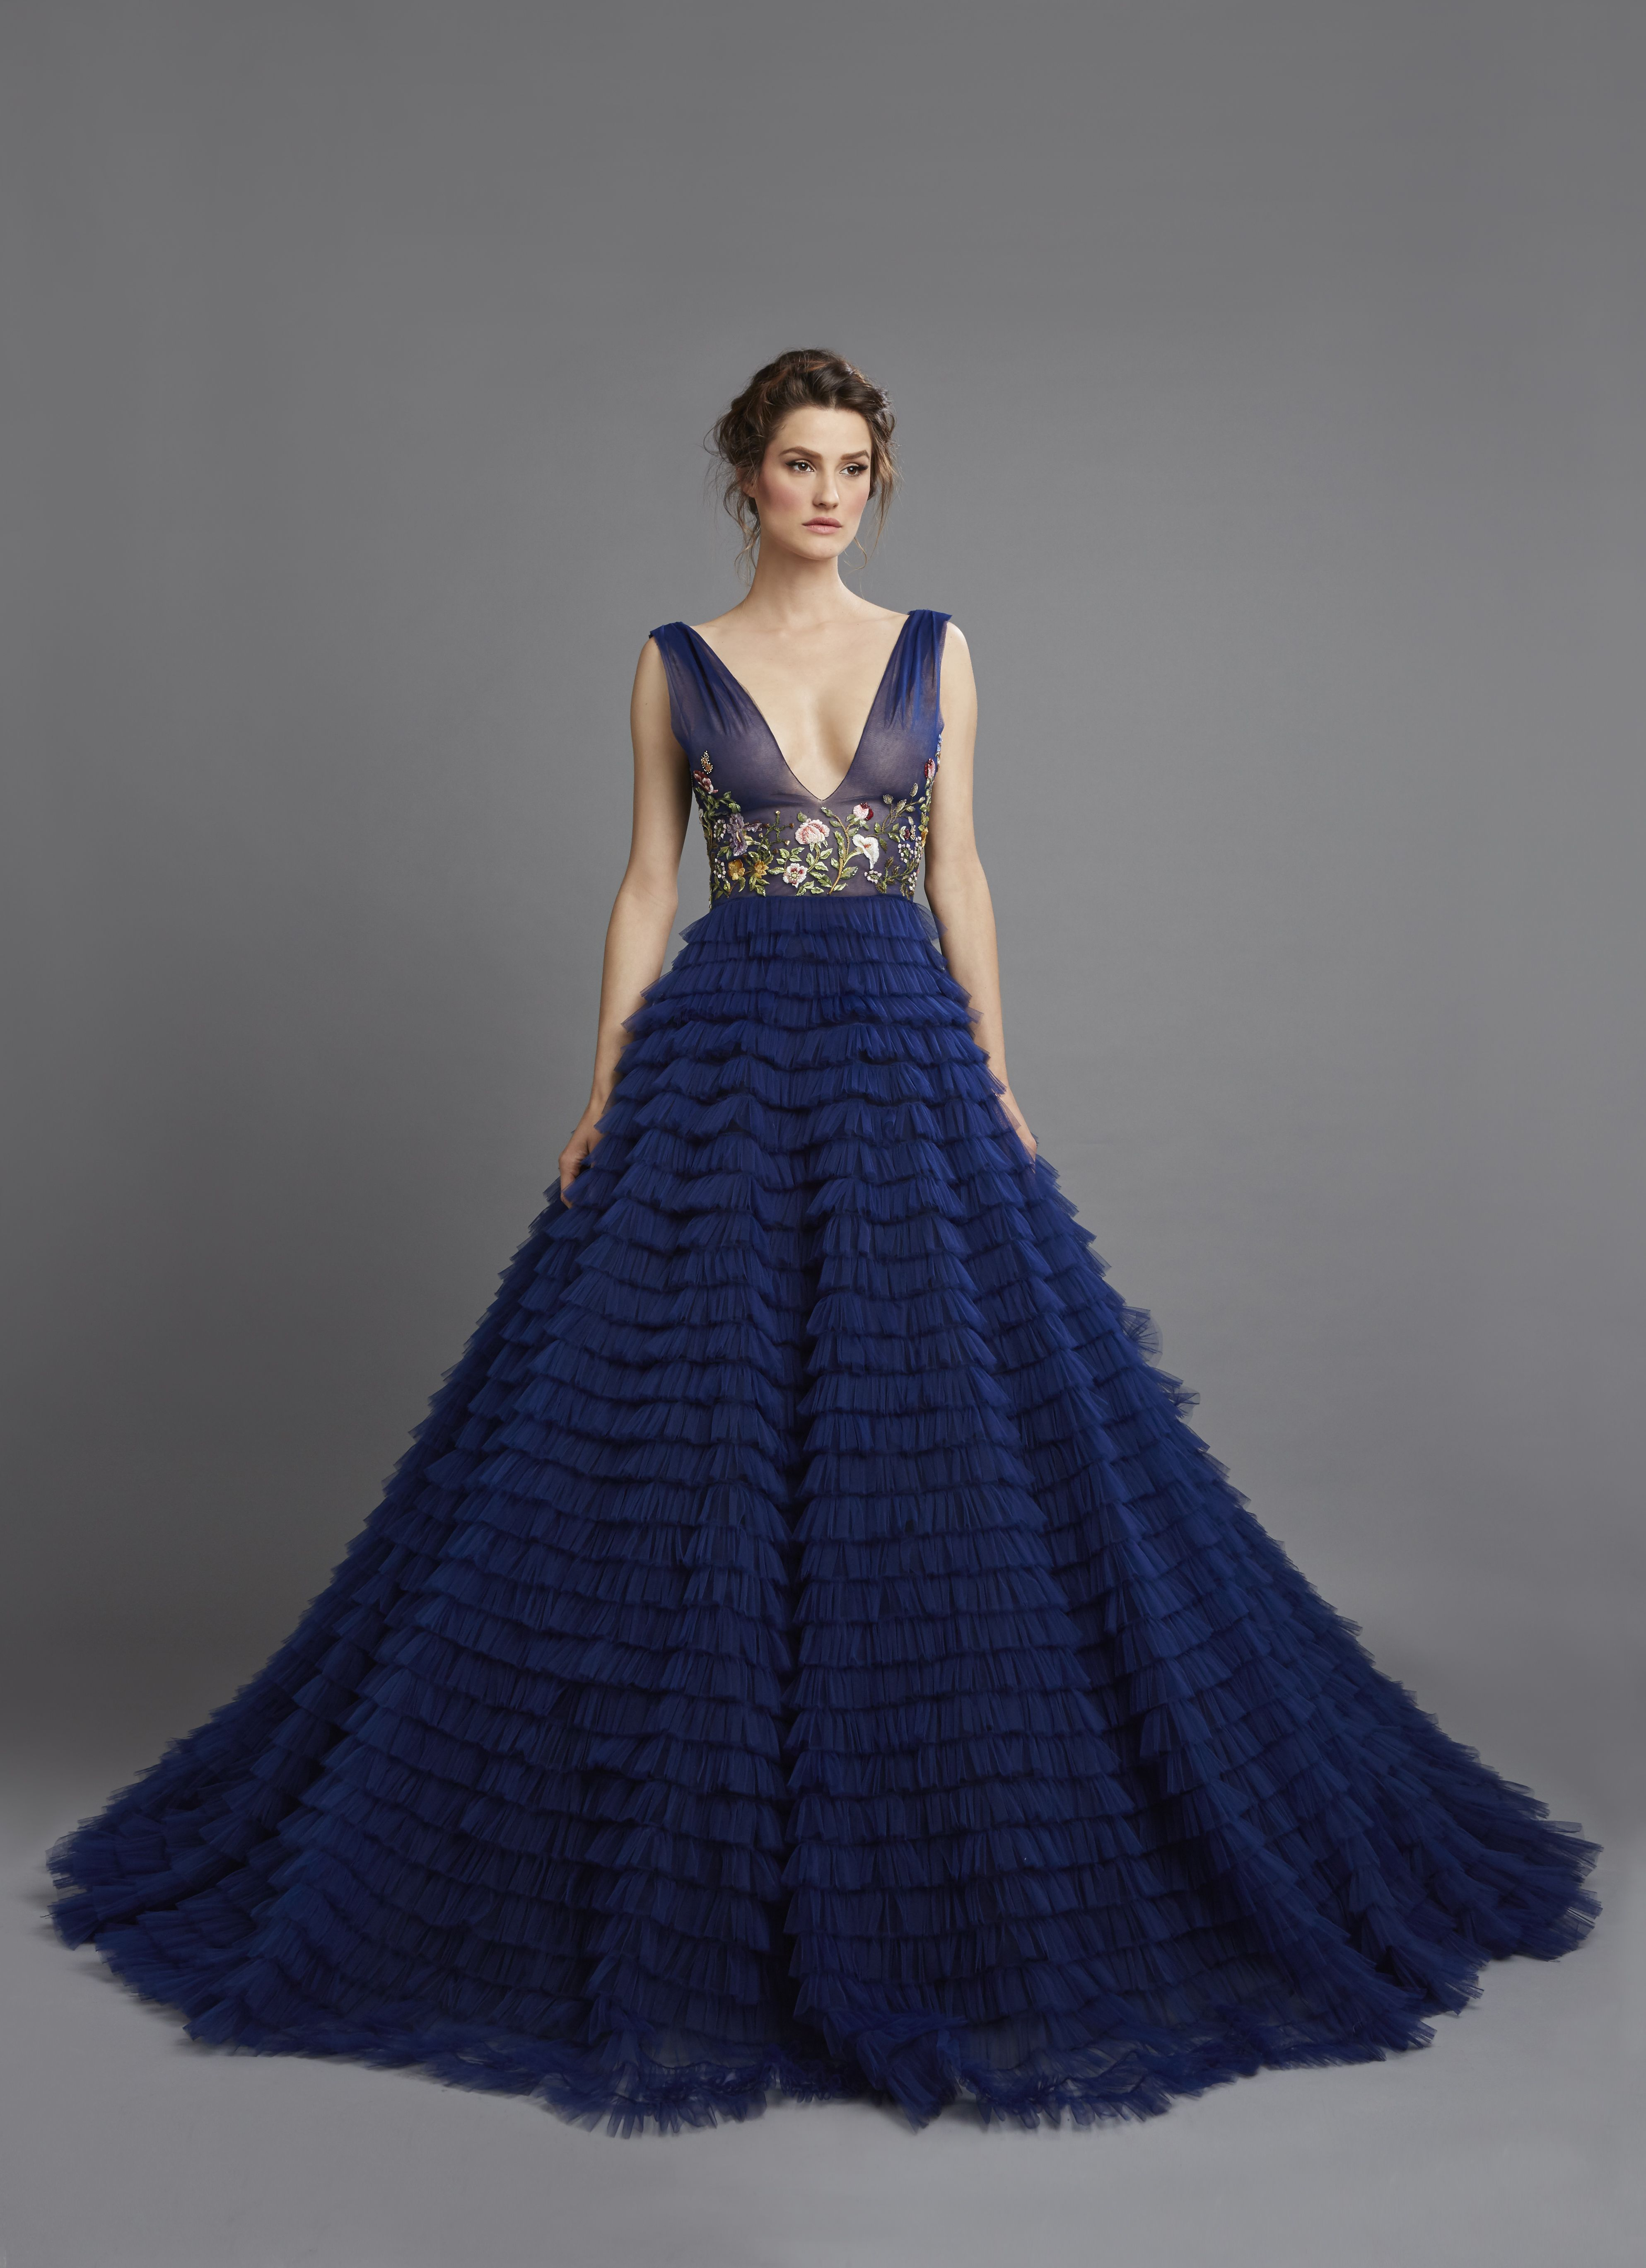 f626d36b9c0c Spring Summer 2015 Midnight blue low-cut ruffled bias tulle strips with  fantasy embroidery ball gown